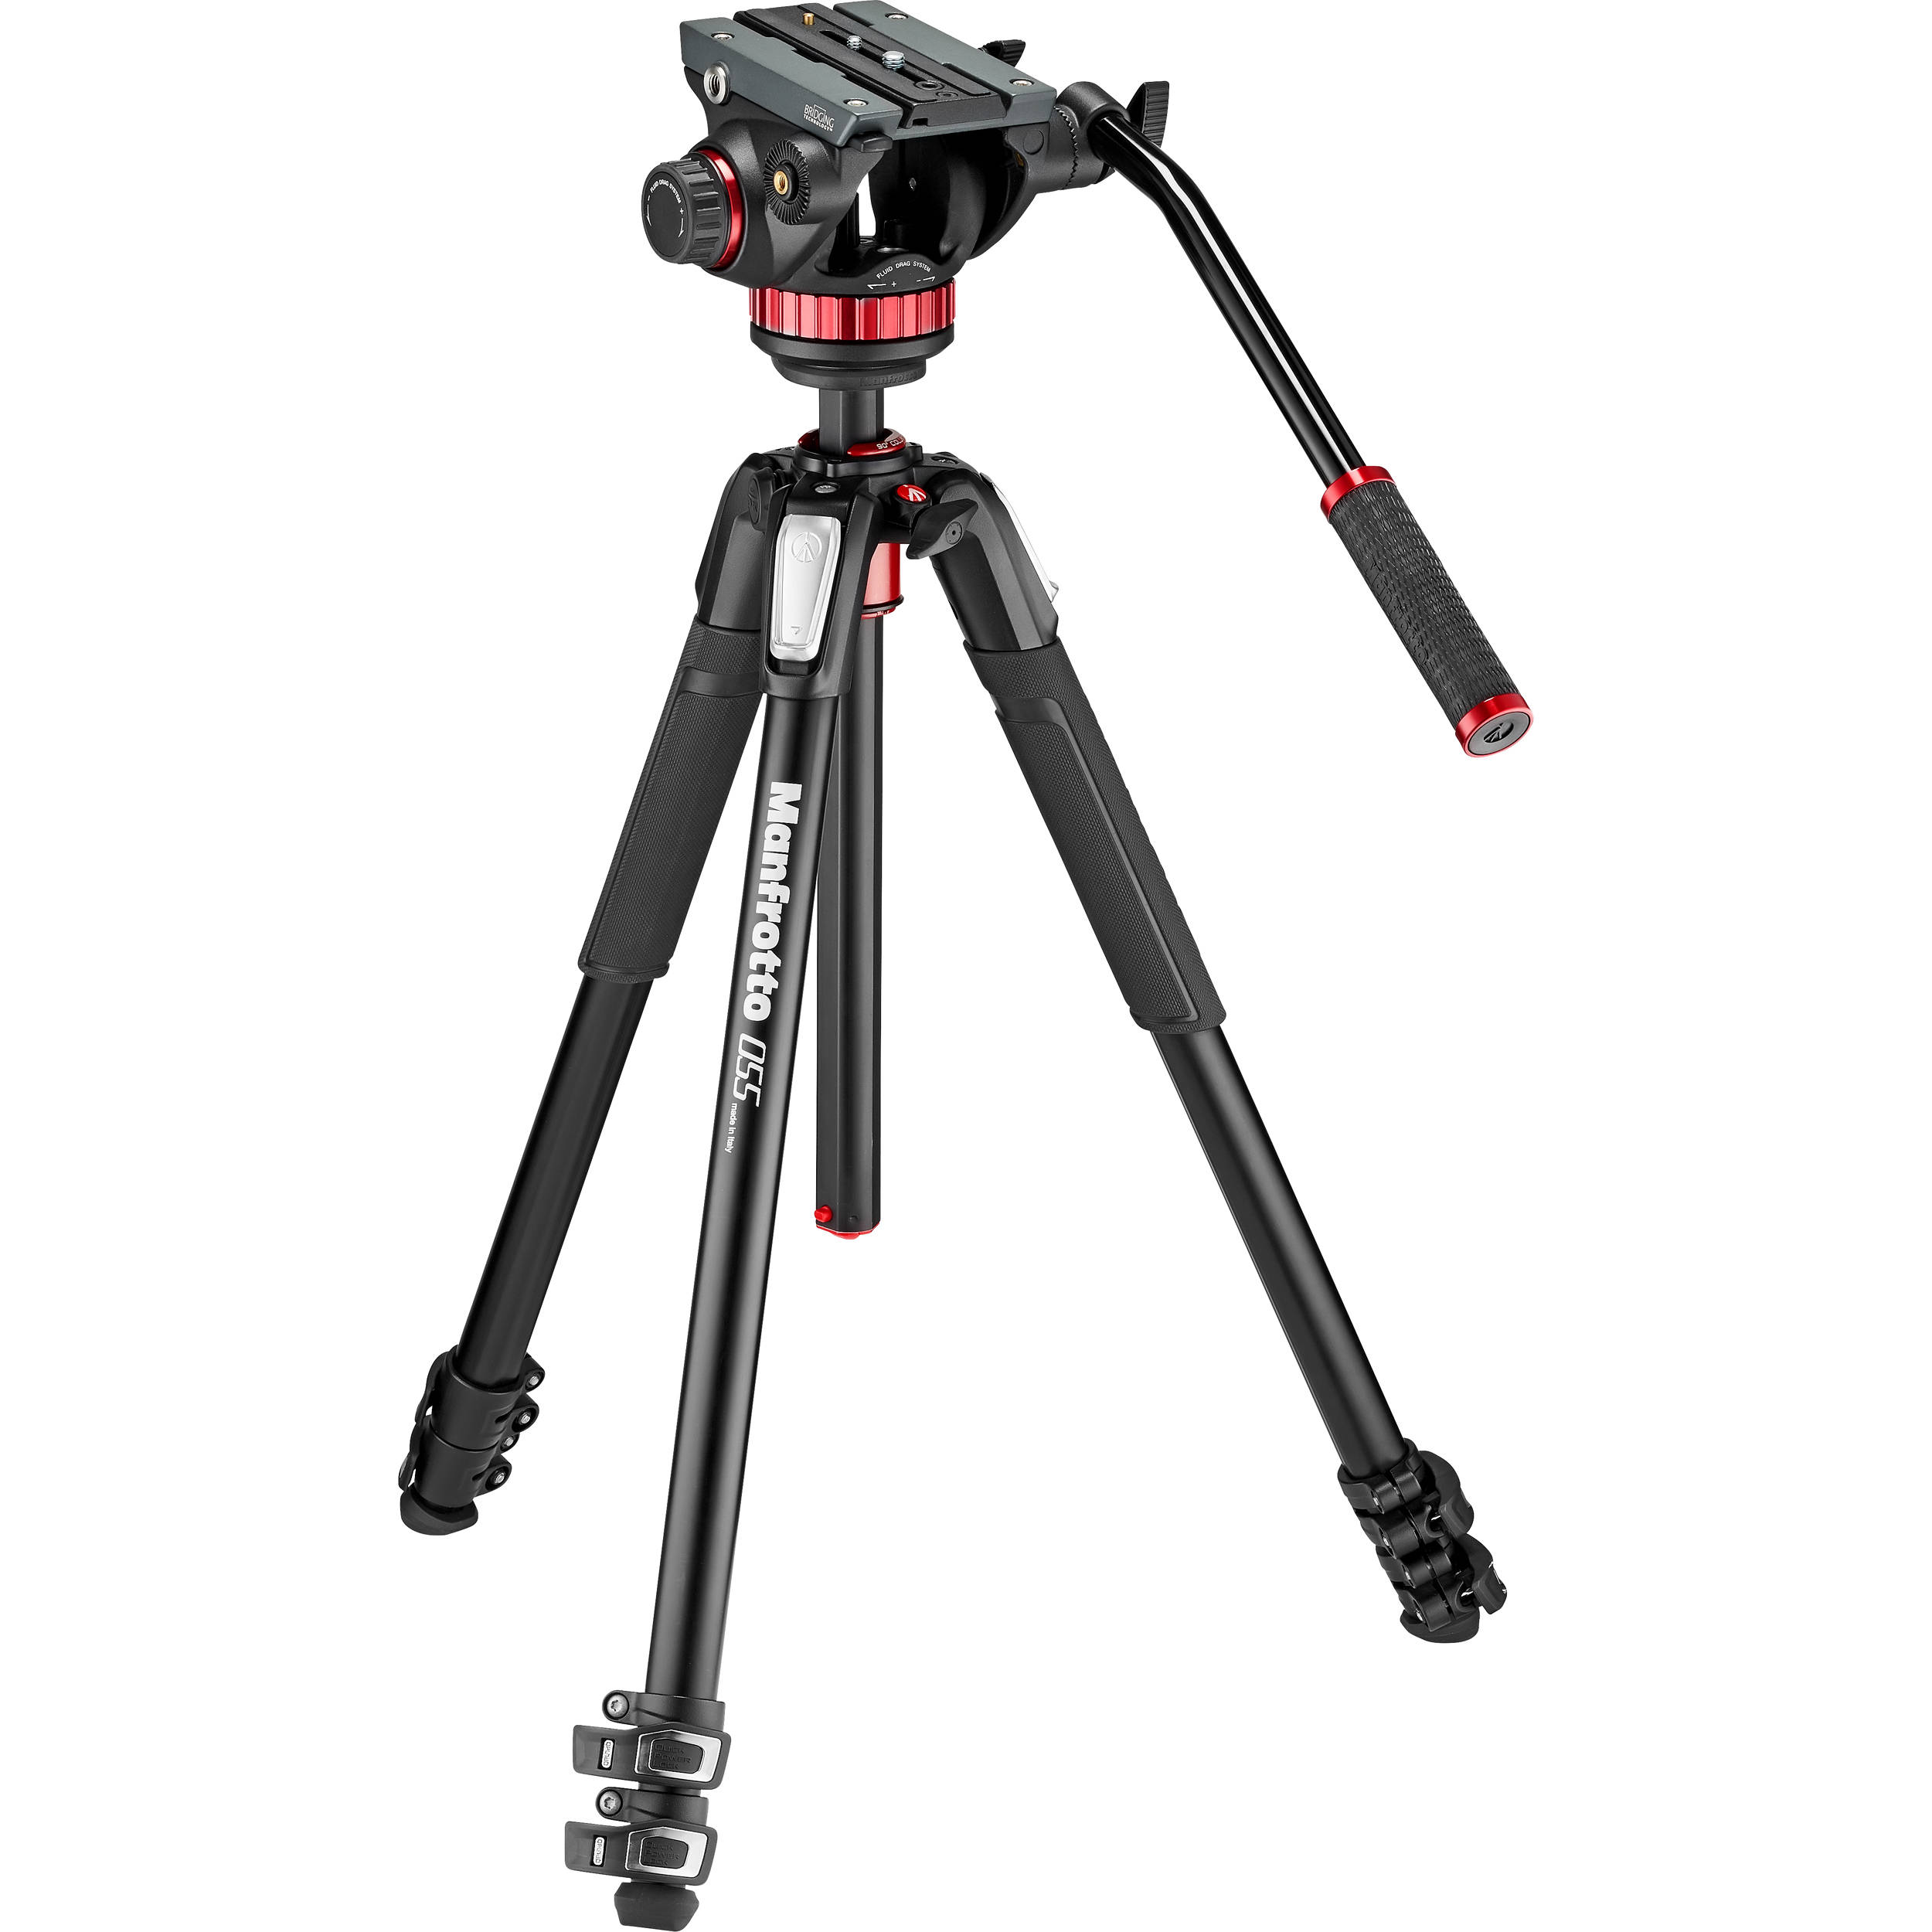 [TEST] Manfrotto Tripod - IN STOCK!